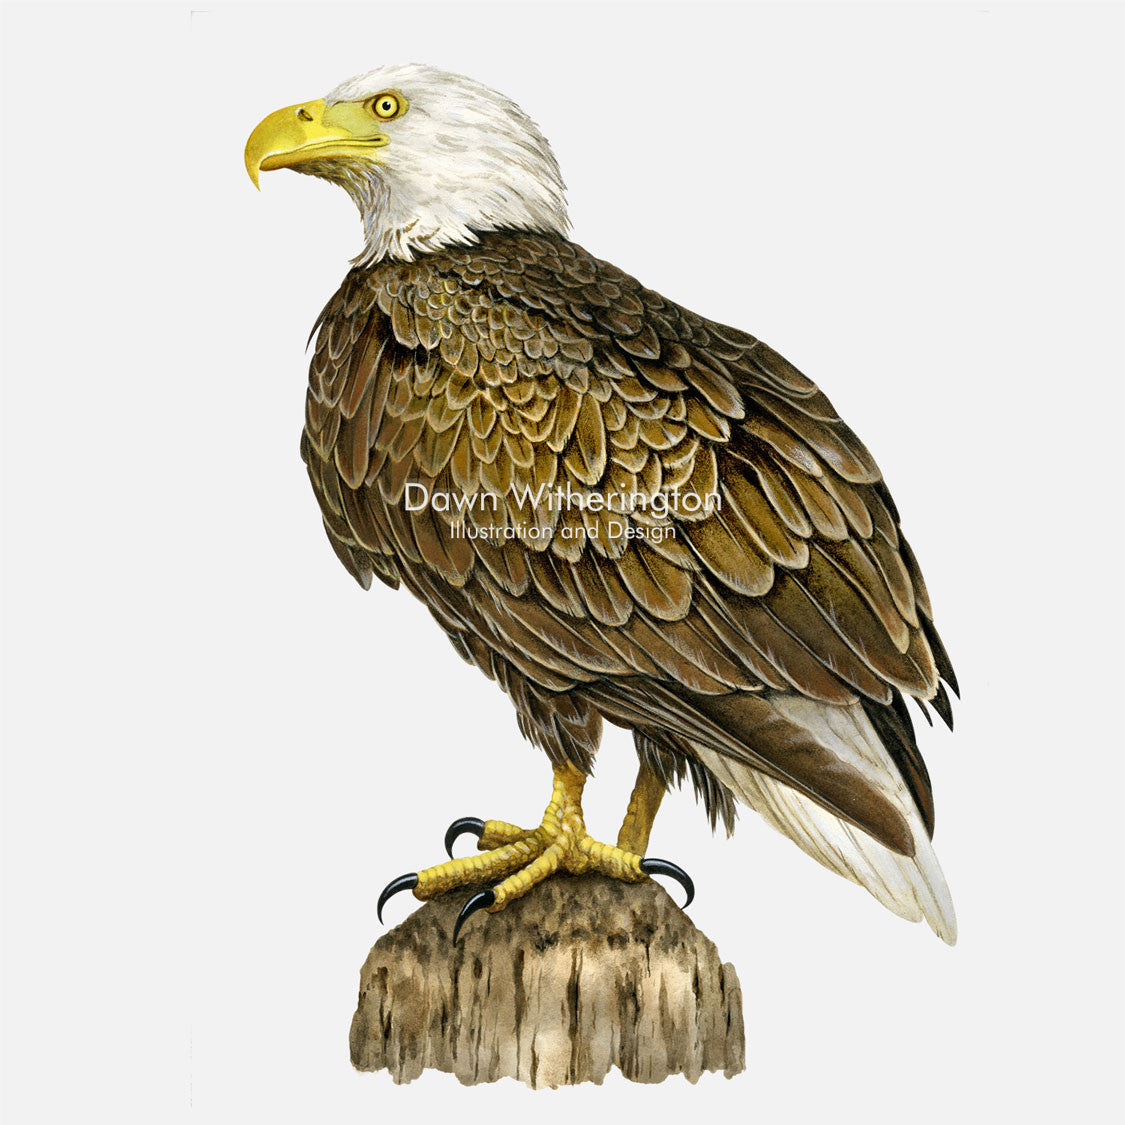 This beautiful illustration of a bald eagle, Haliaeetus leucocephalus, is biologically accurate in detail.